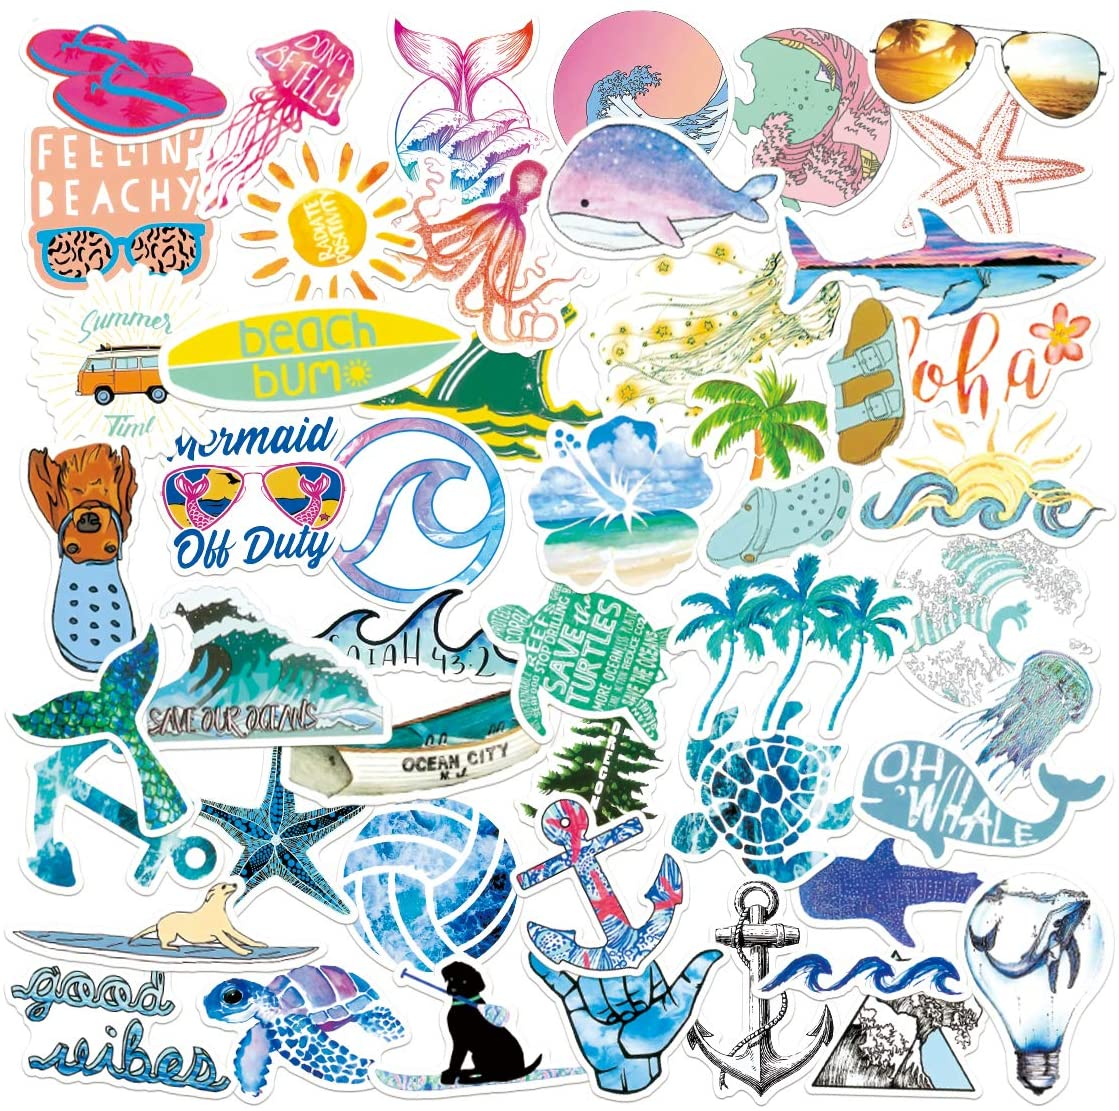 Ocean Stickers | 50 PCS | pura vida Vinyl Waterproof Stickers for Laptop,Skateboard,Water Bottles,Computer,Phone, Outdoor Adventure Stickers (Beach Surfing 50Pcs)